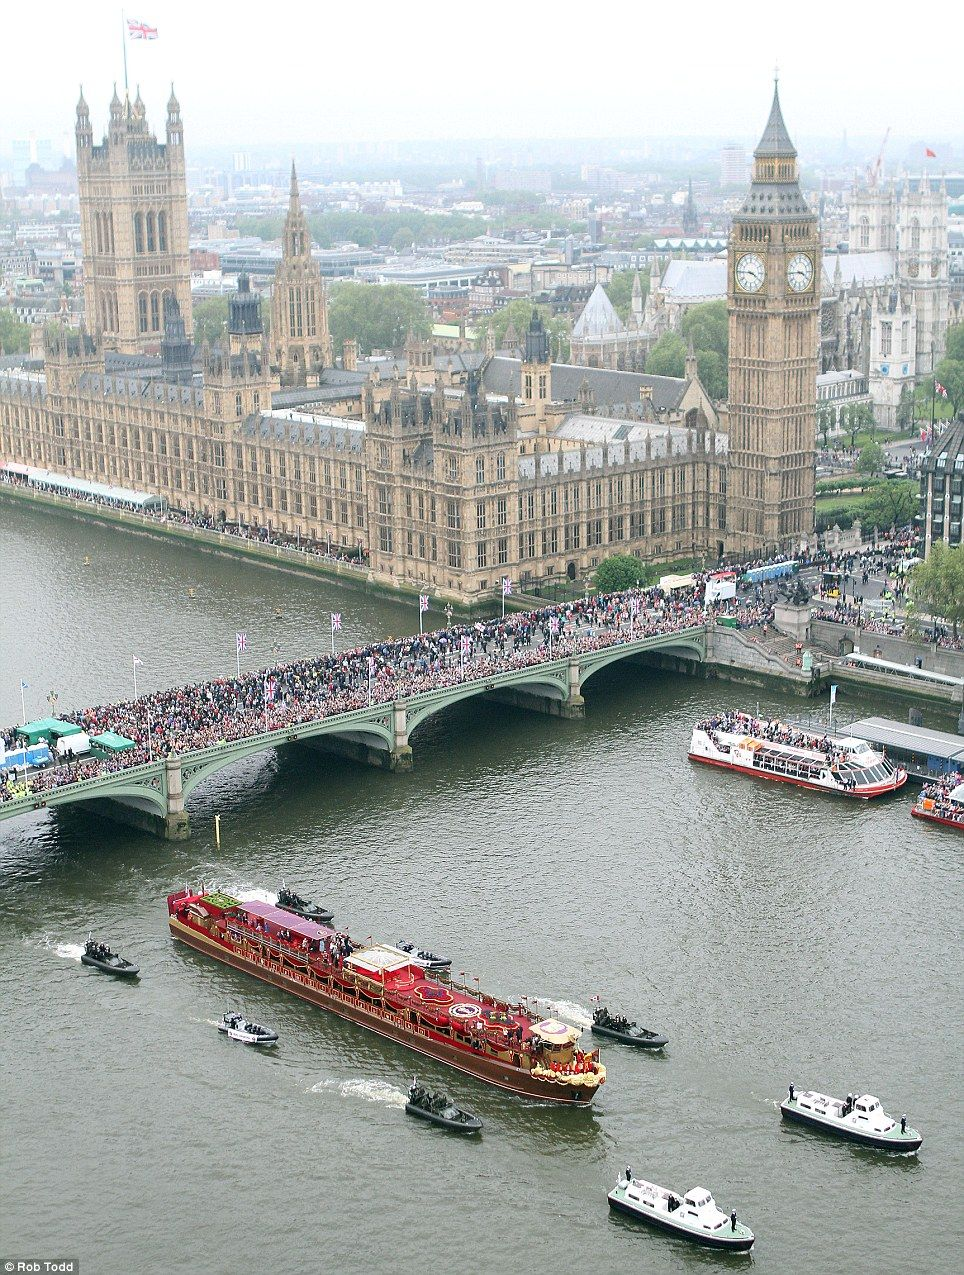 The view from the London Eye: Crowds pack Westminster Bridge as the royal barge and escort passes the Houses of Parliament. Jubilee river pageant - June 2012.